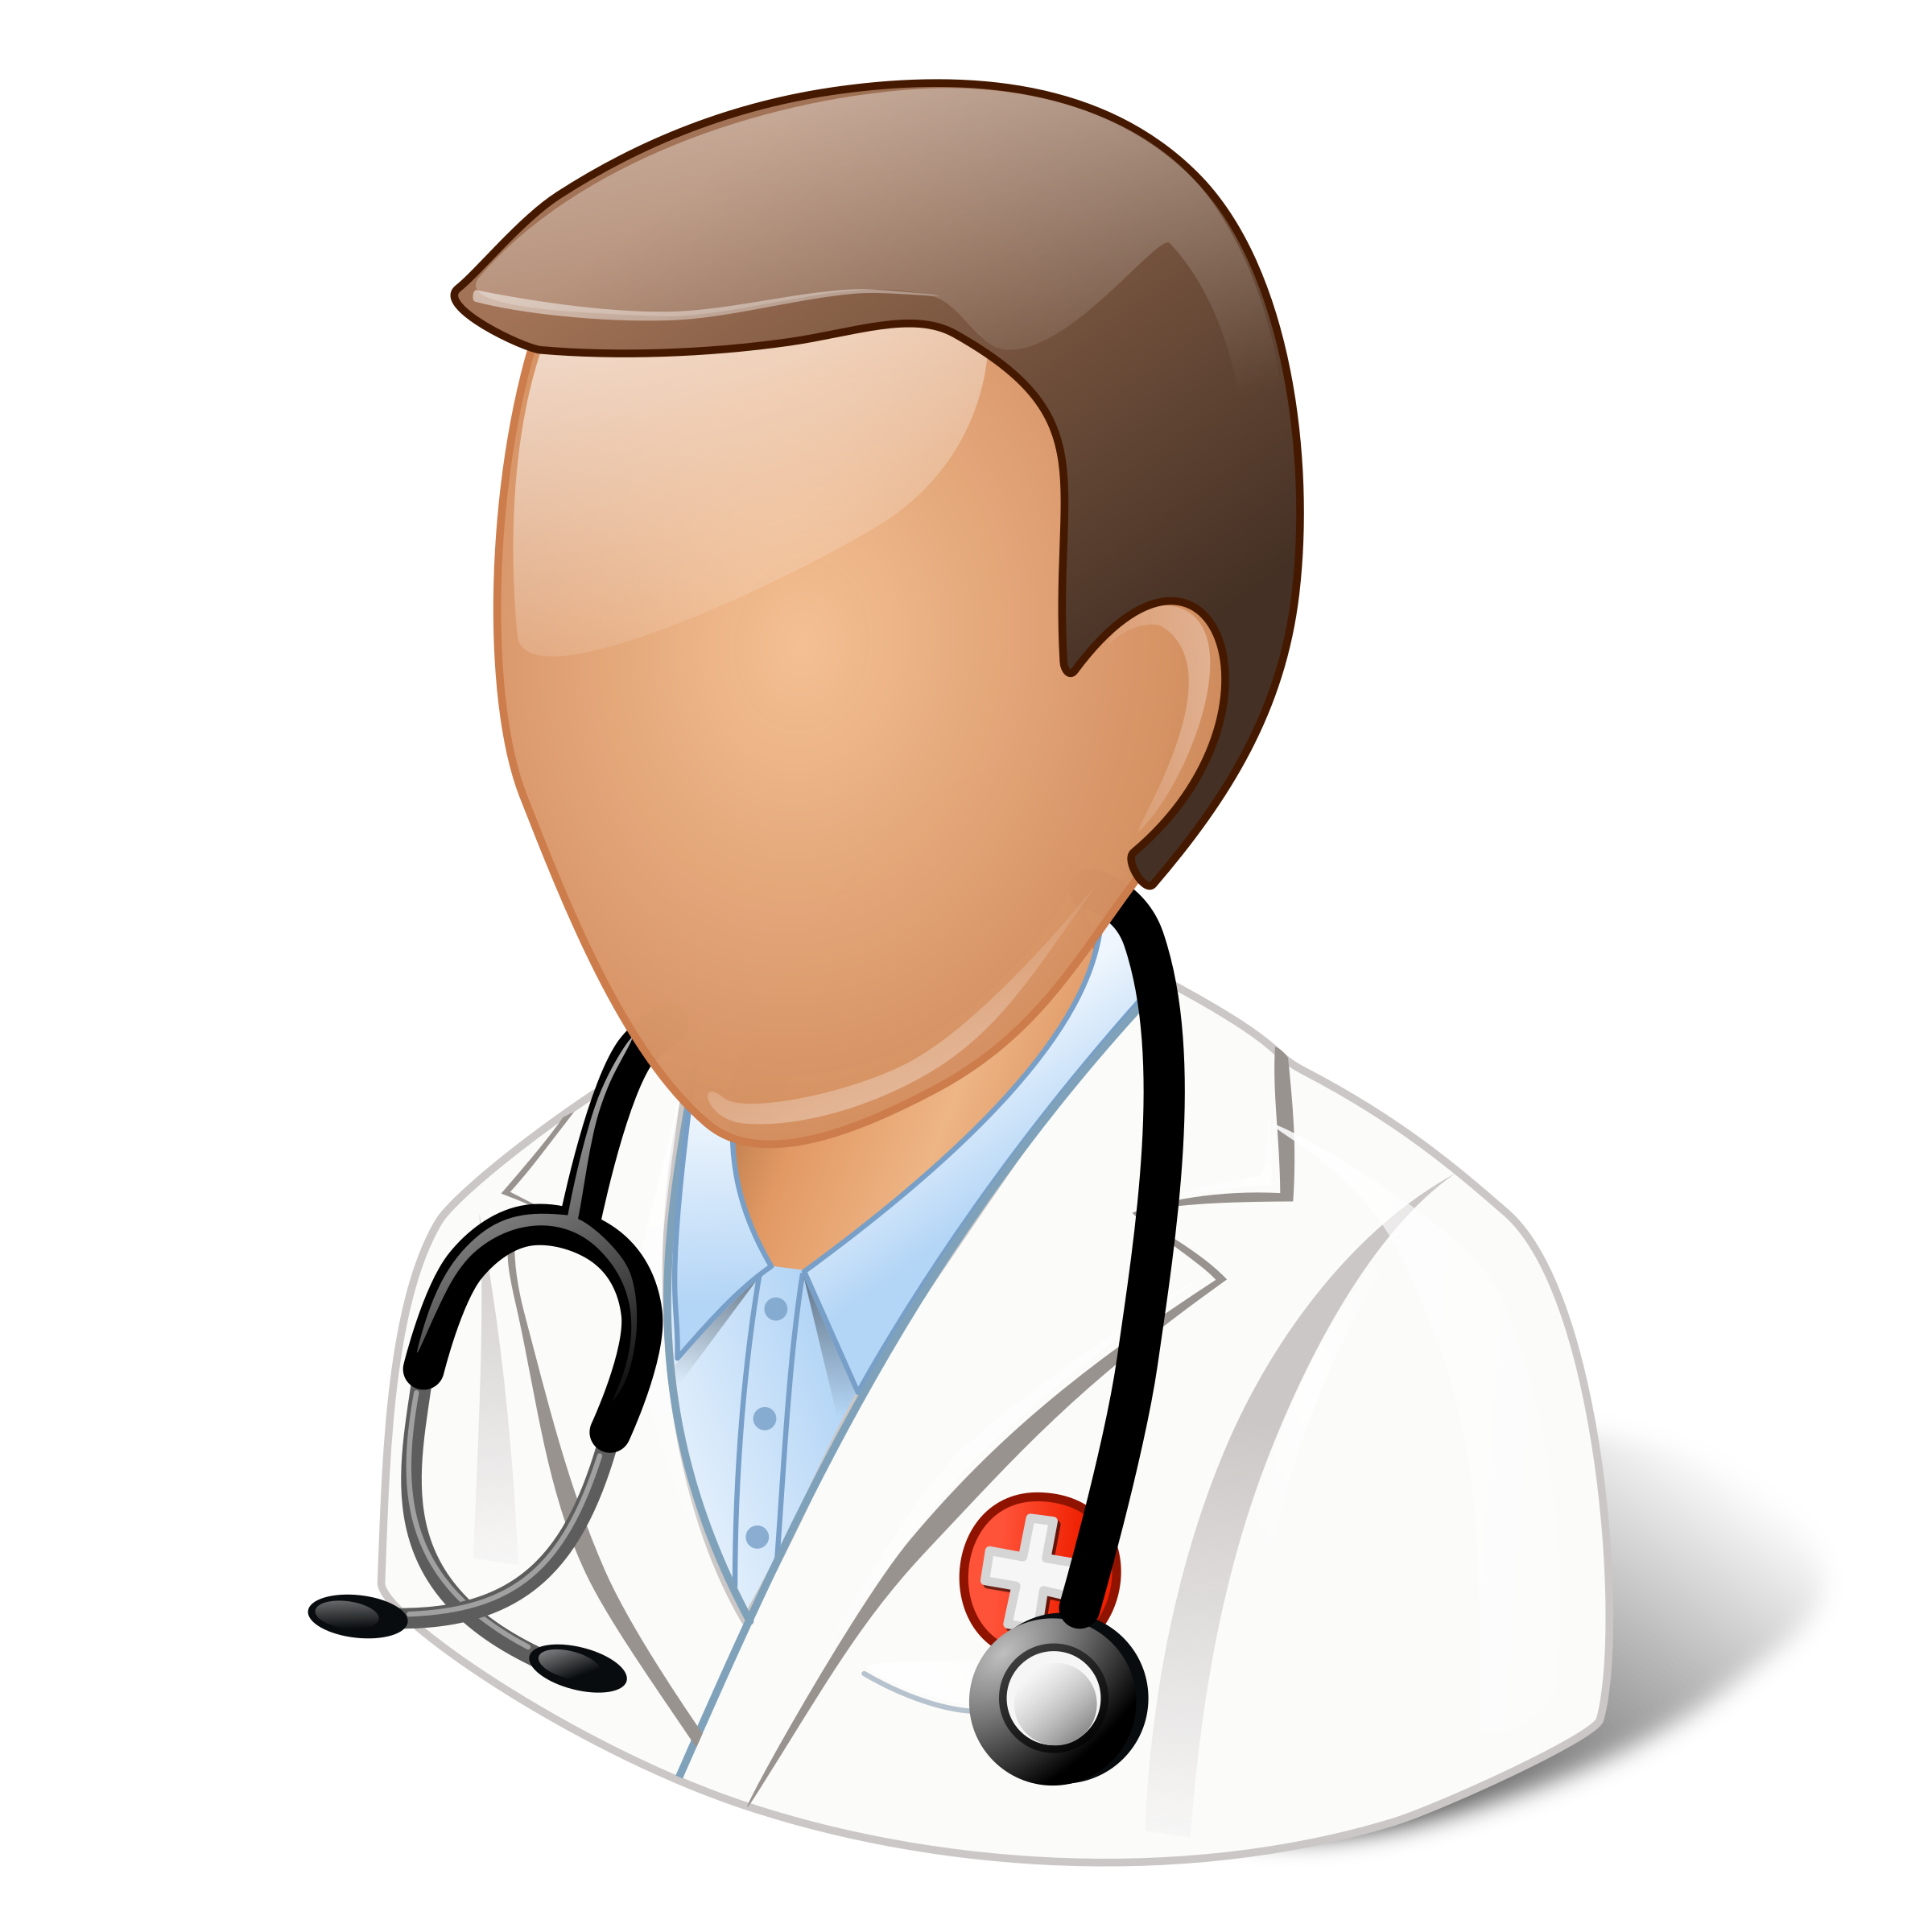 doctor clipart transparent background